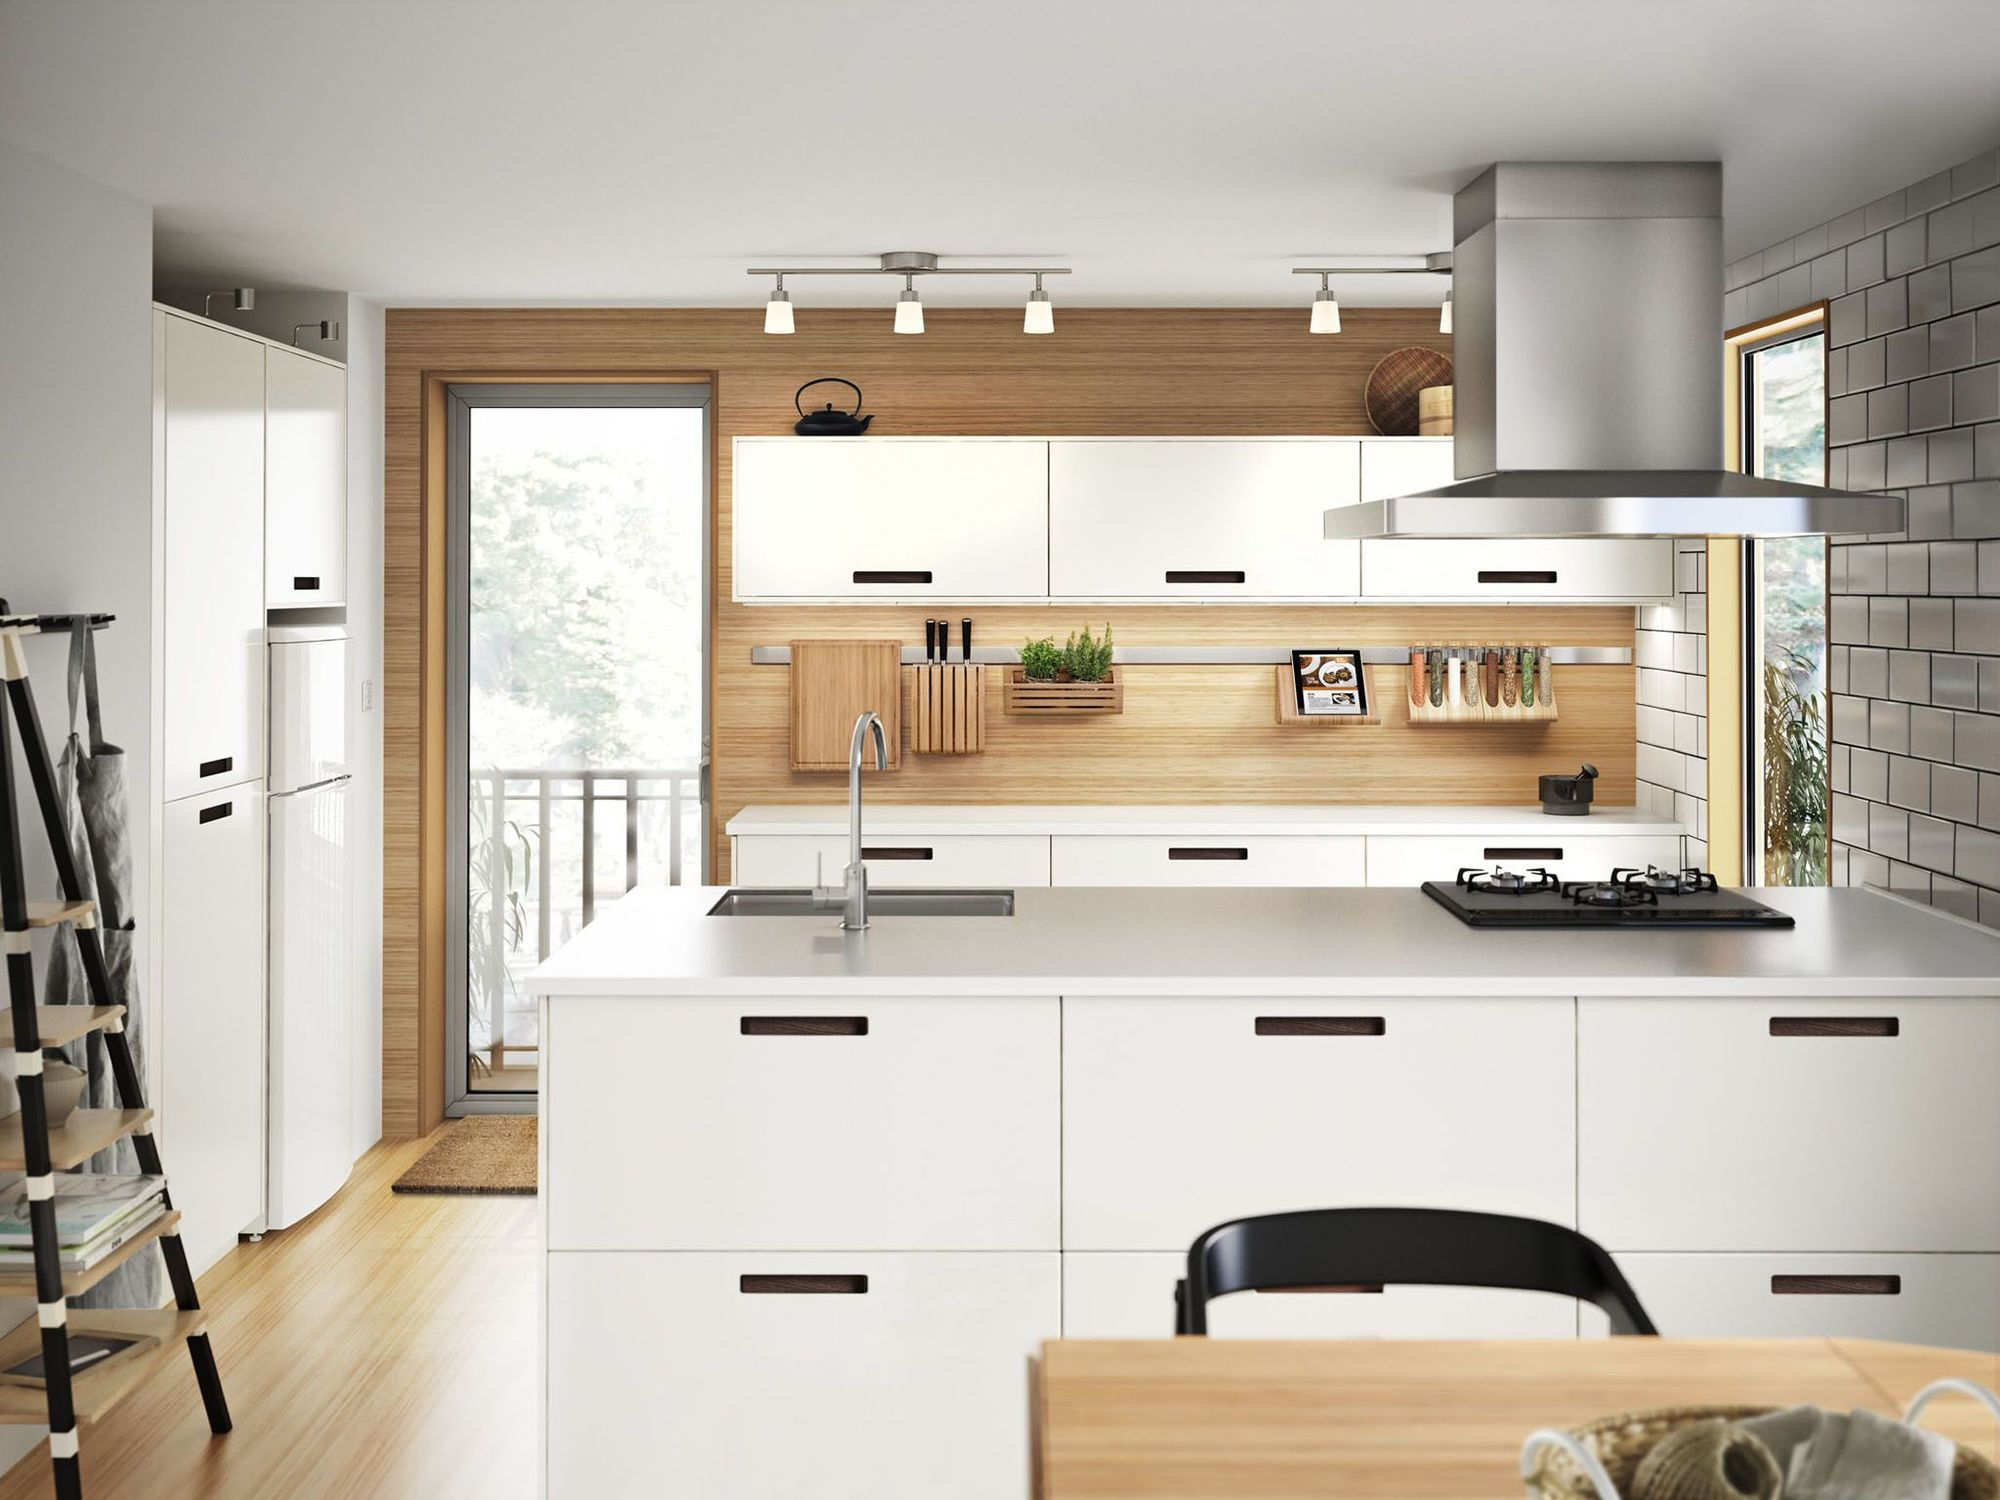 the ikea catalog for 2016: new kitchen cabinet door, sink, and